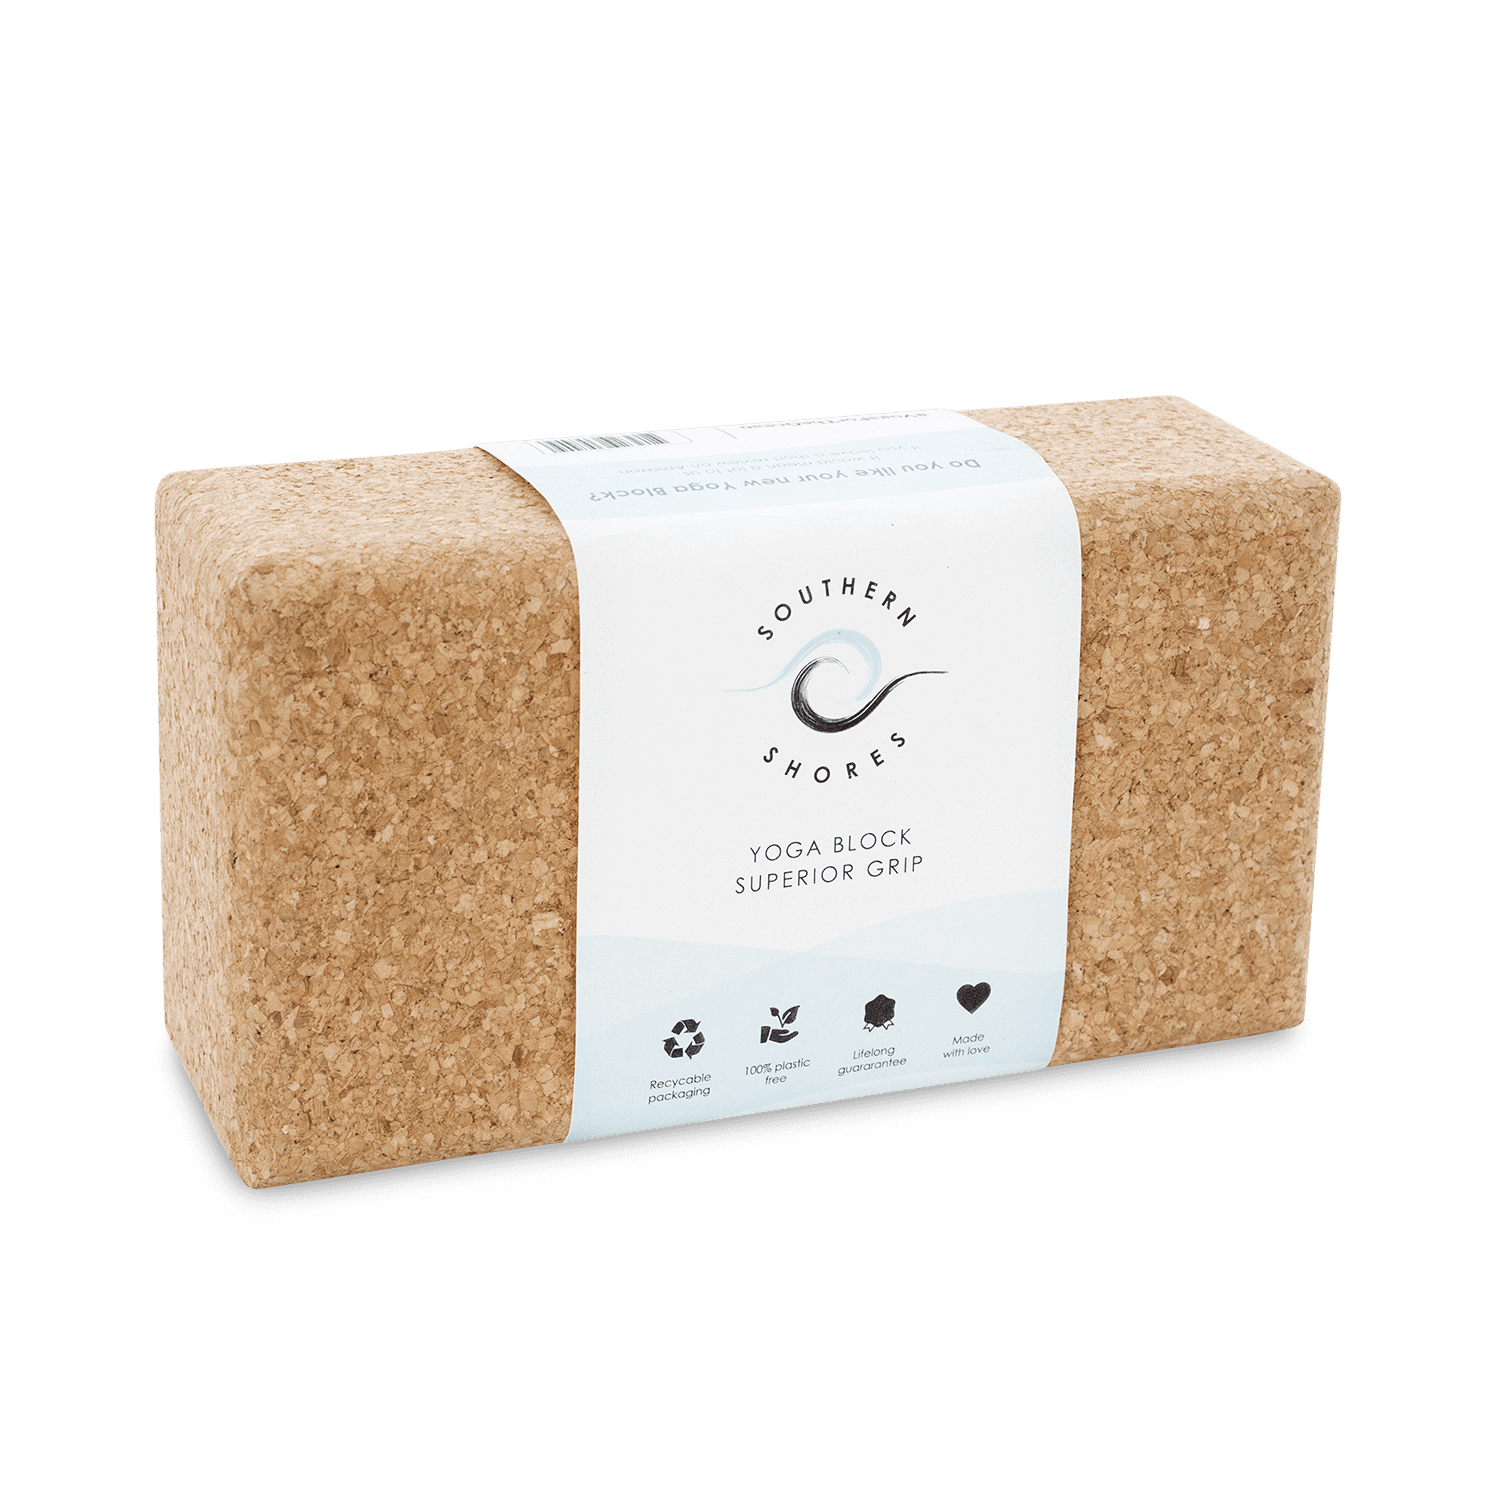 sustainable gifts Southern Shores Natural cork yoga block